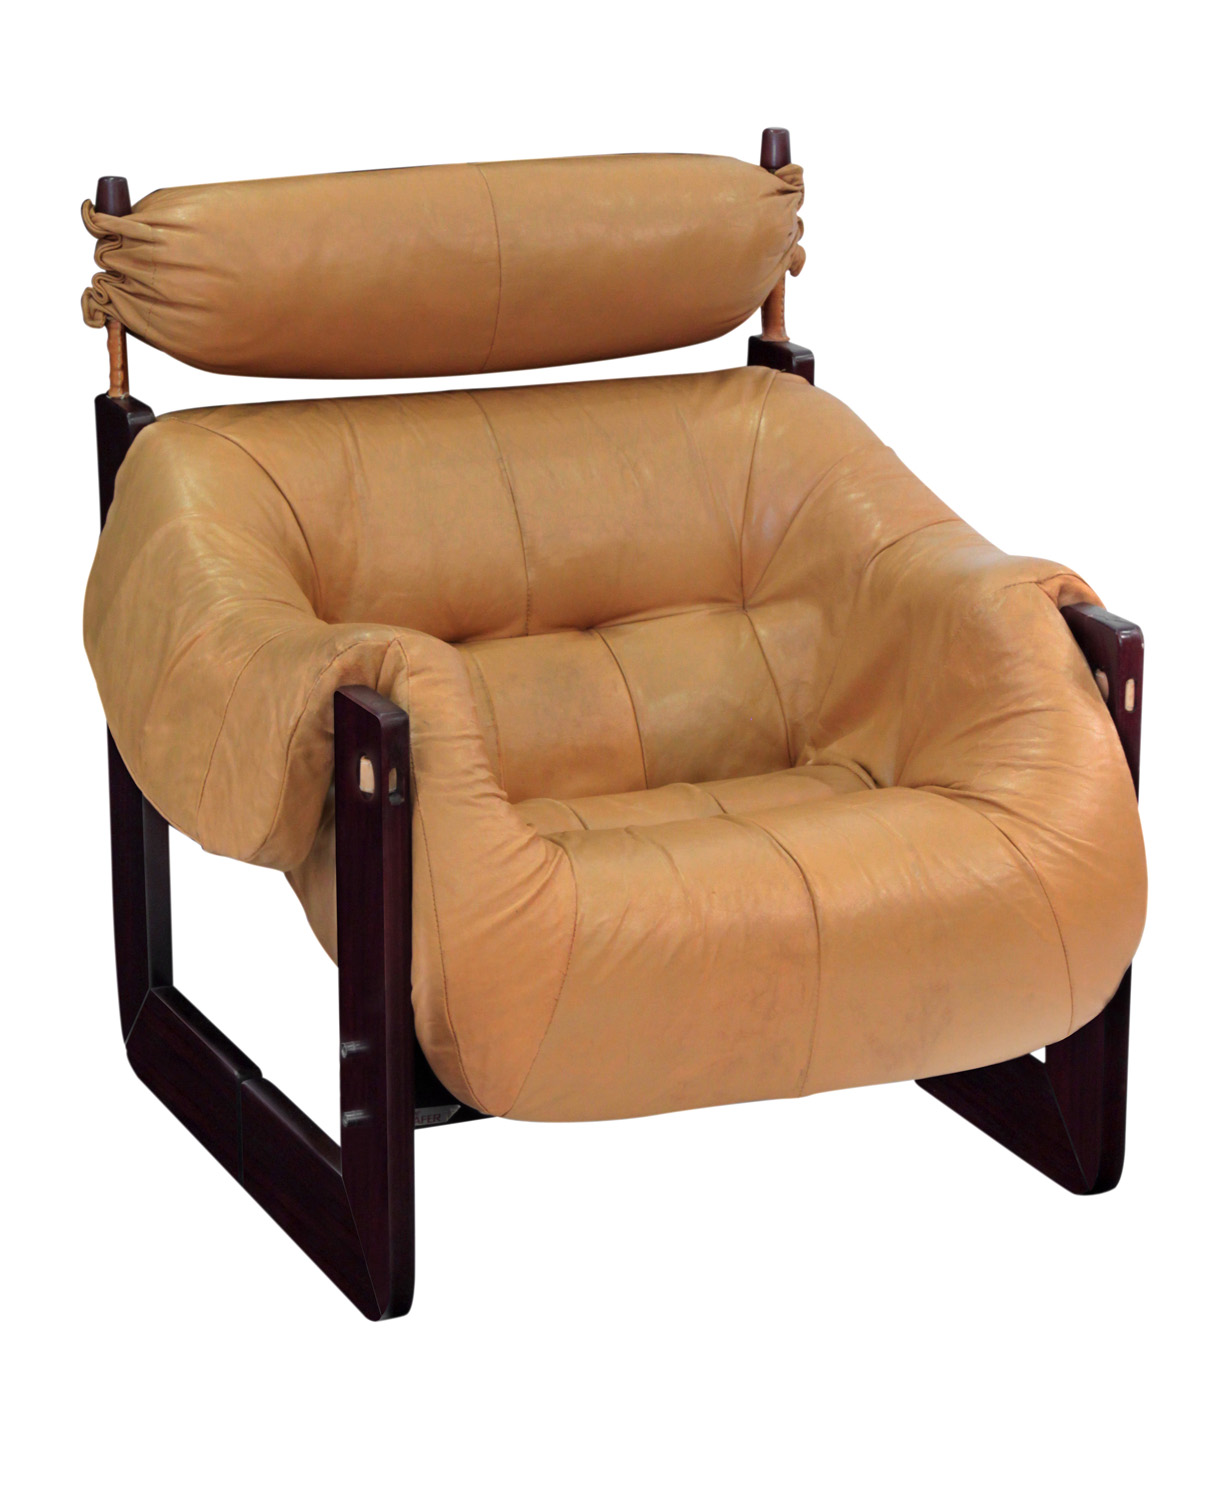 Lafter 45 rosewood+leather seat loungechair89 hires.jpg